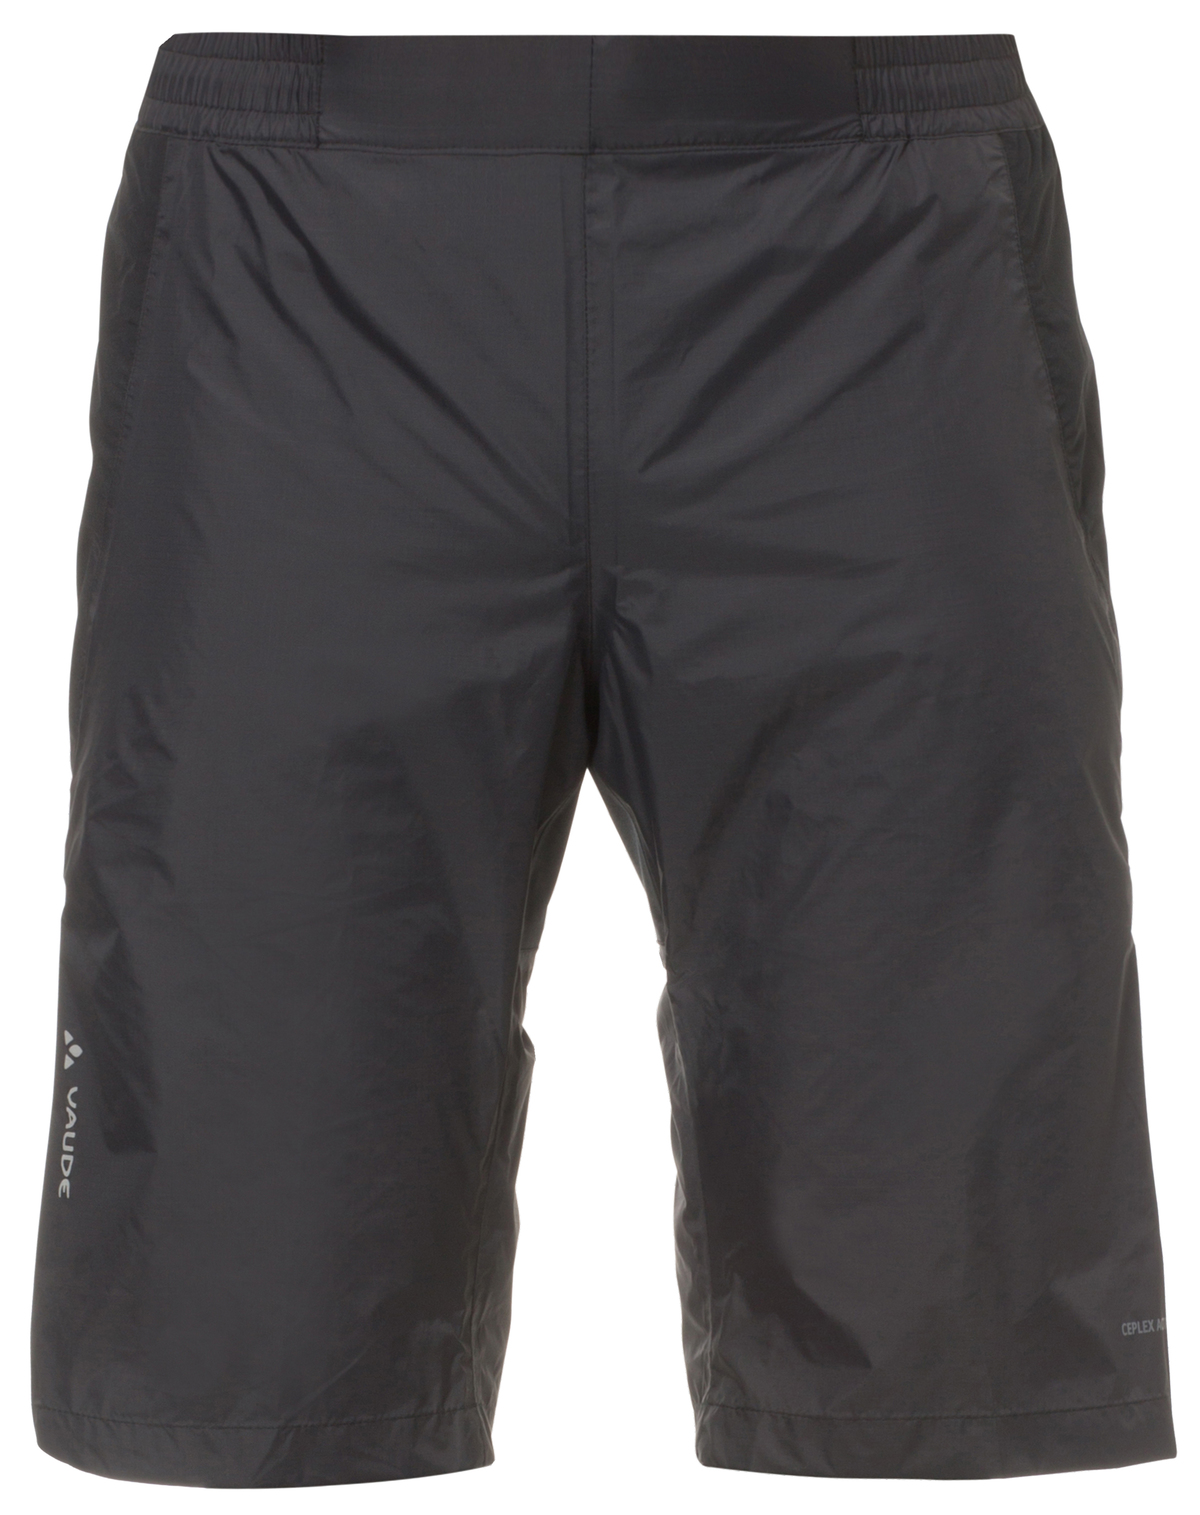 VAUDE Men´s Spray Shorts III black Größe S - schneider-sports